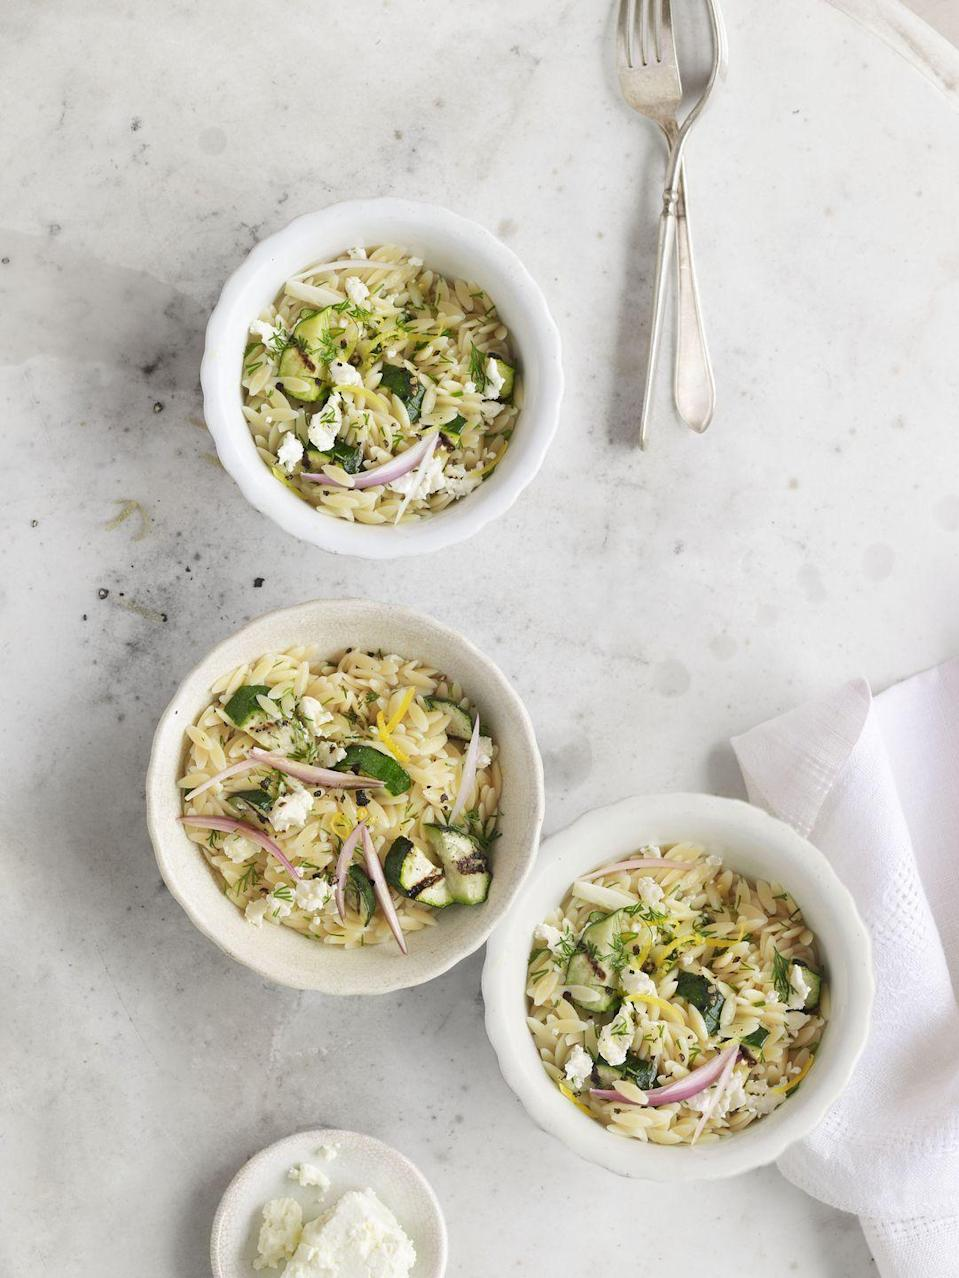 """<p>Elevate this rice-like pasta from simple side to satisfying main with bright Mediterranean touches: tangy citrus, fragrant dill, and salty cheese.</p><p><strong><a href=""""https://www.countryliving.com/food-drinks/recipes/a3886/orzo-zucchini-dill-feta-recipe-clv0512/"""" rel=""""nofollow noopener"""" target=""""_blank"""" data-ylk=""""slk:Get the recipe."""" class=""""link rapid-noclick-resp"""">Get the recipe.</a></strong></p>"""